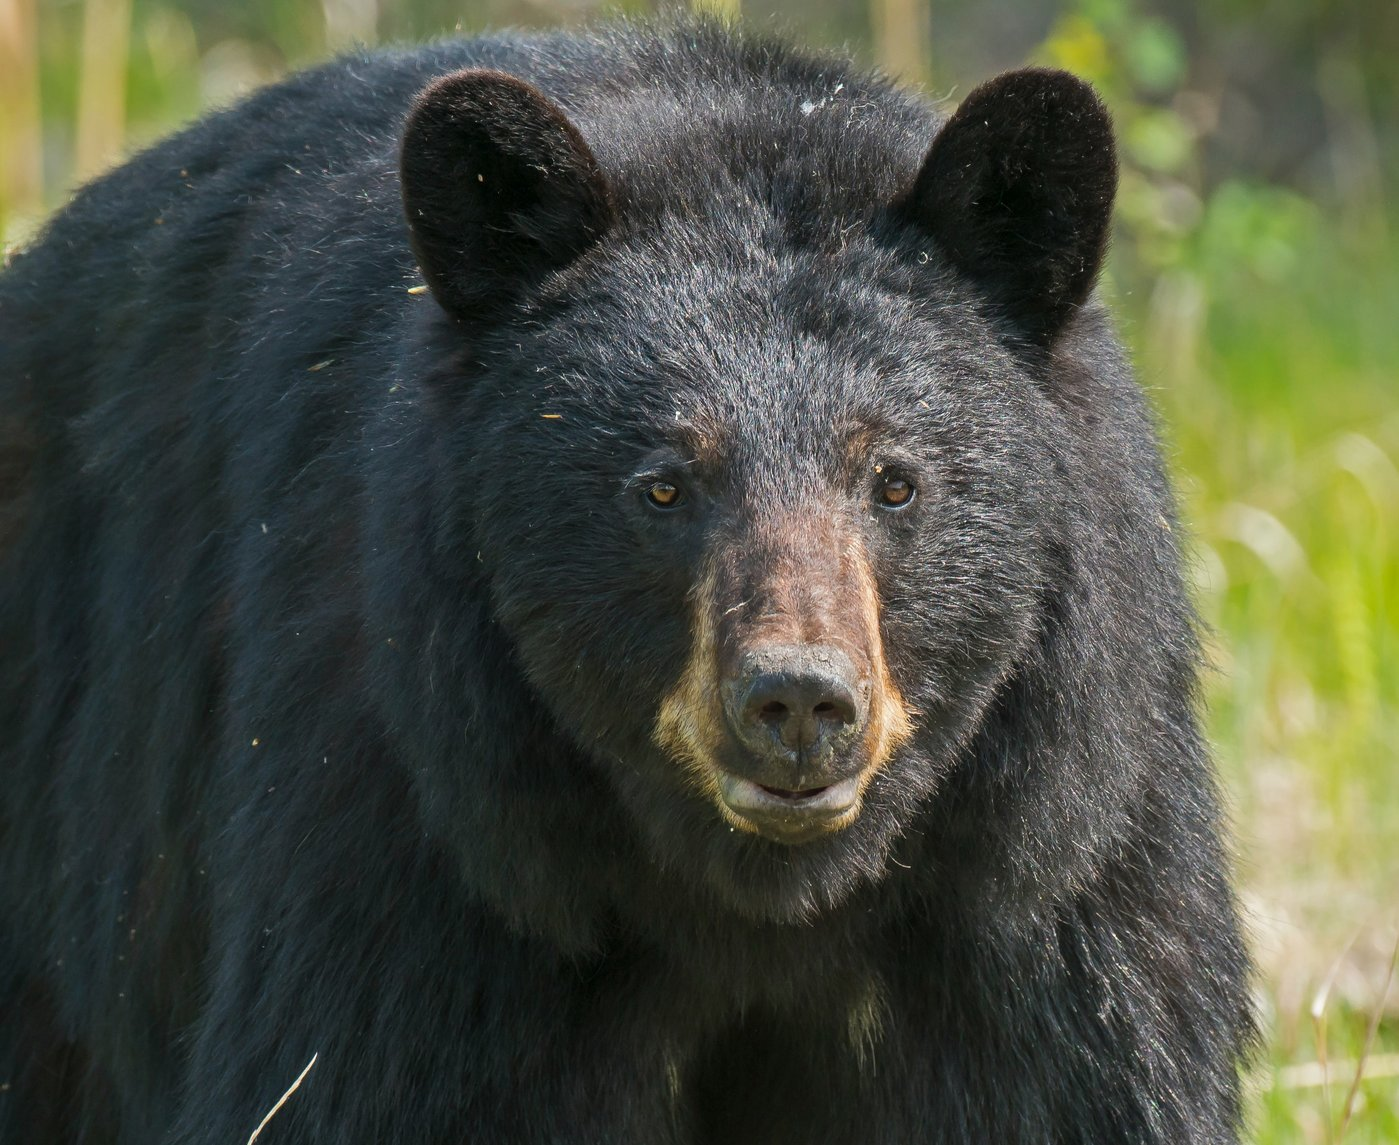 Yosemite Bears Are 'Having A Party' In The Closed National Park